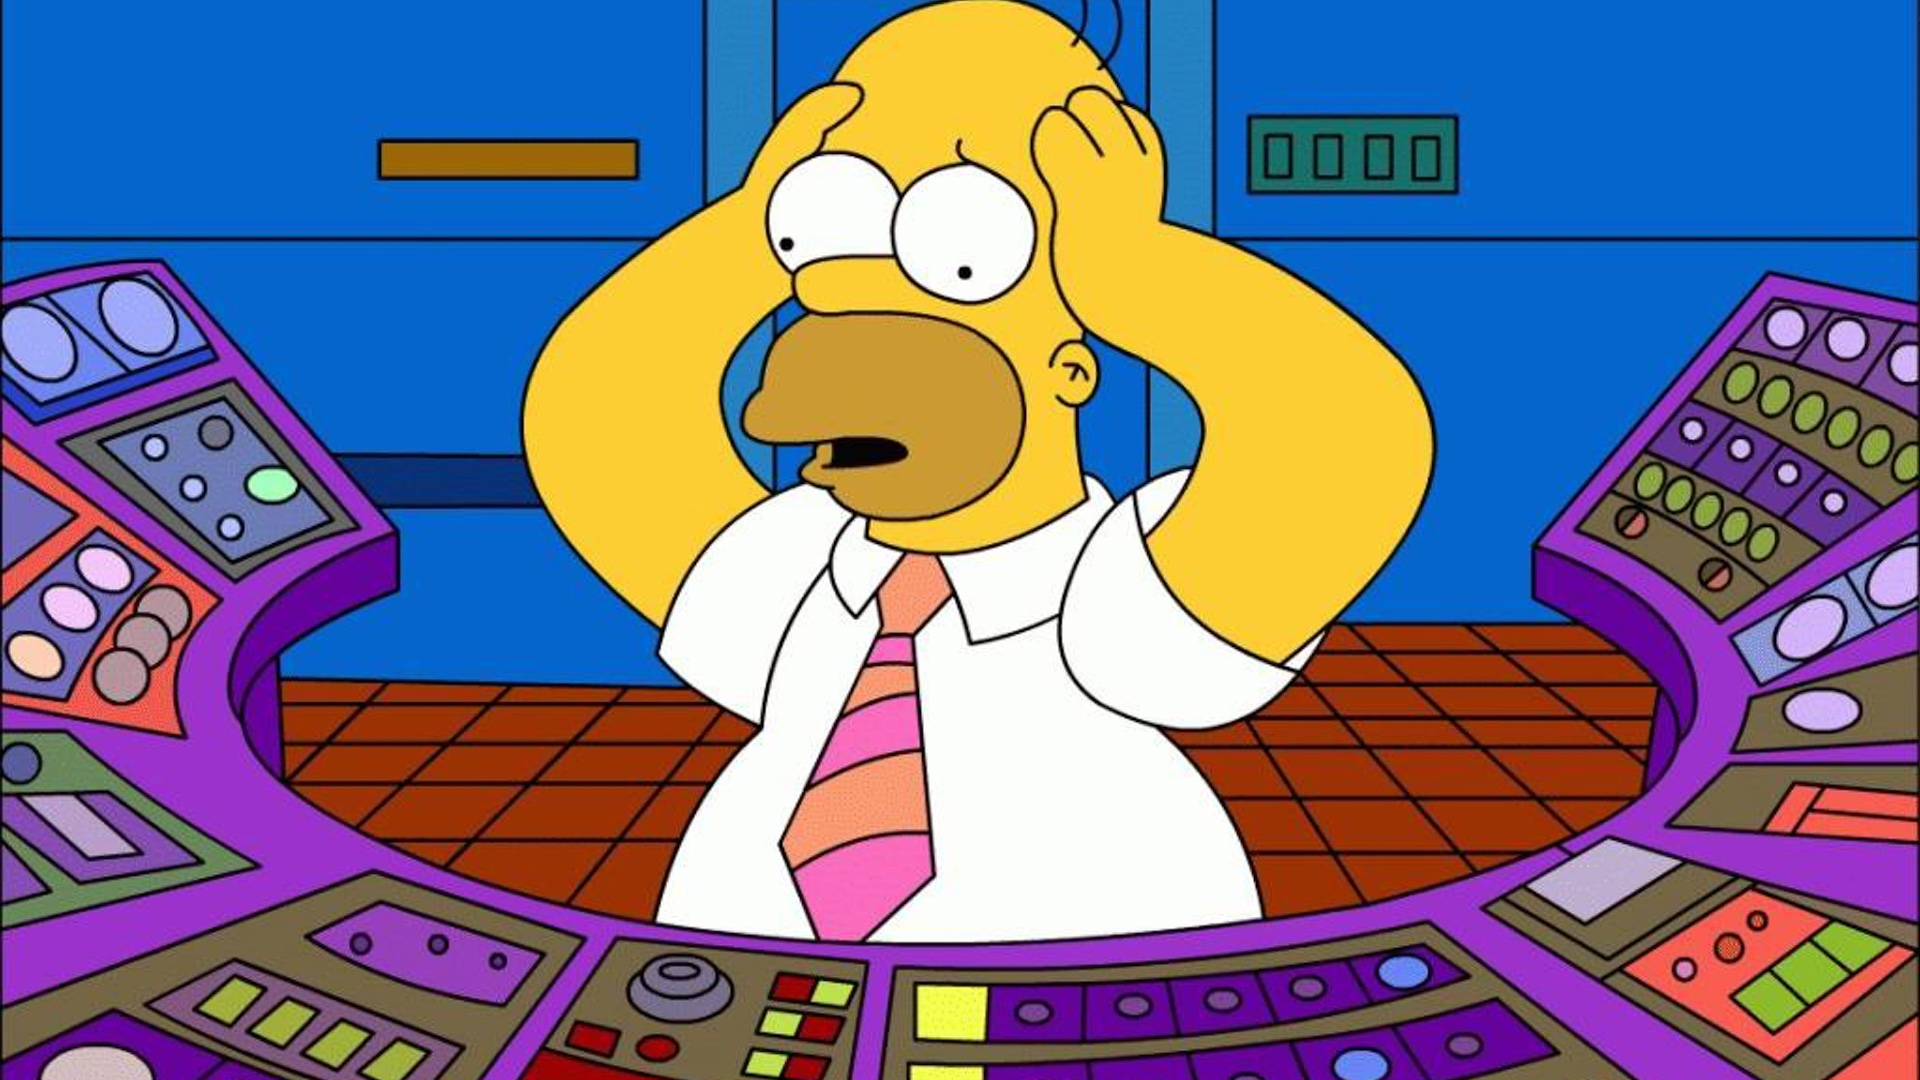 homer simpson will appear live on the simpsons in may geektyrant